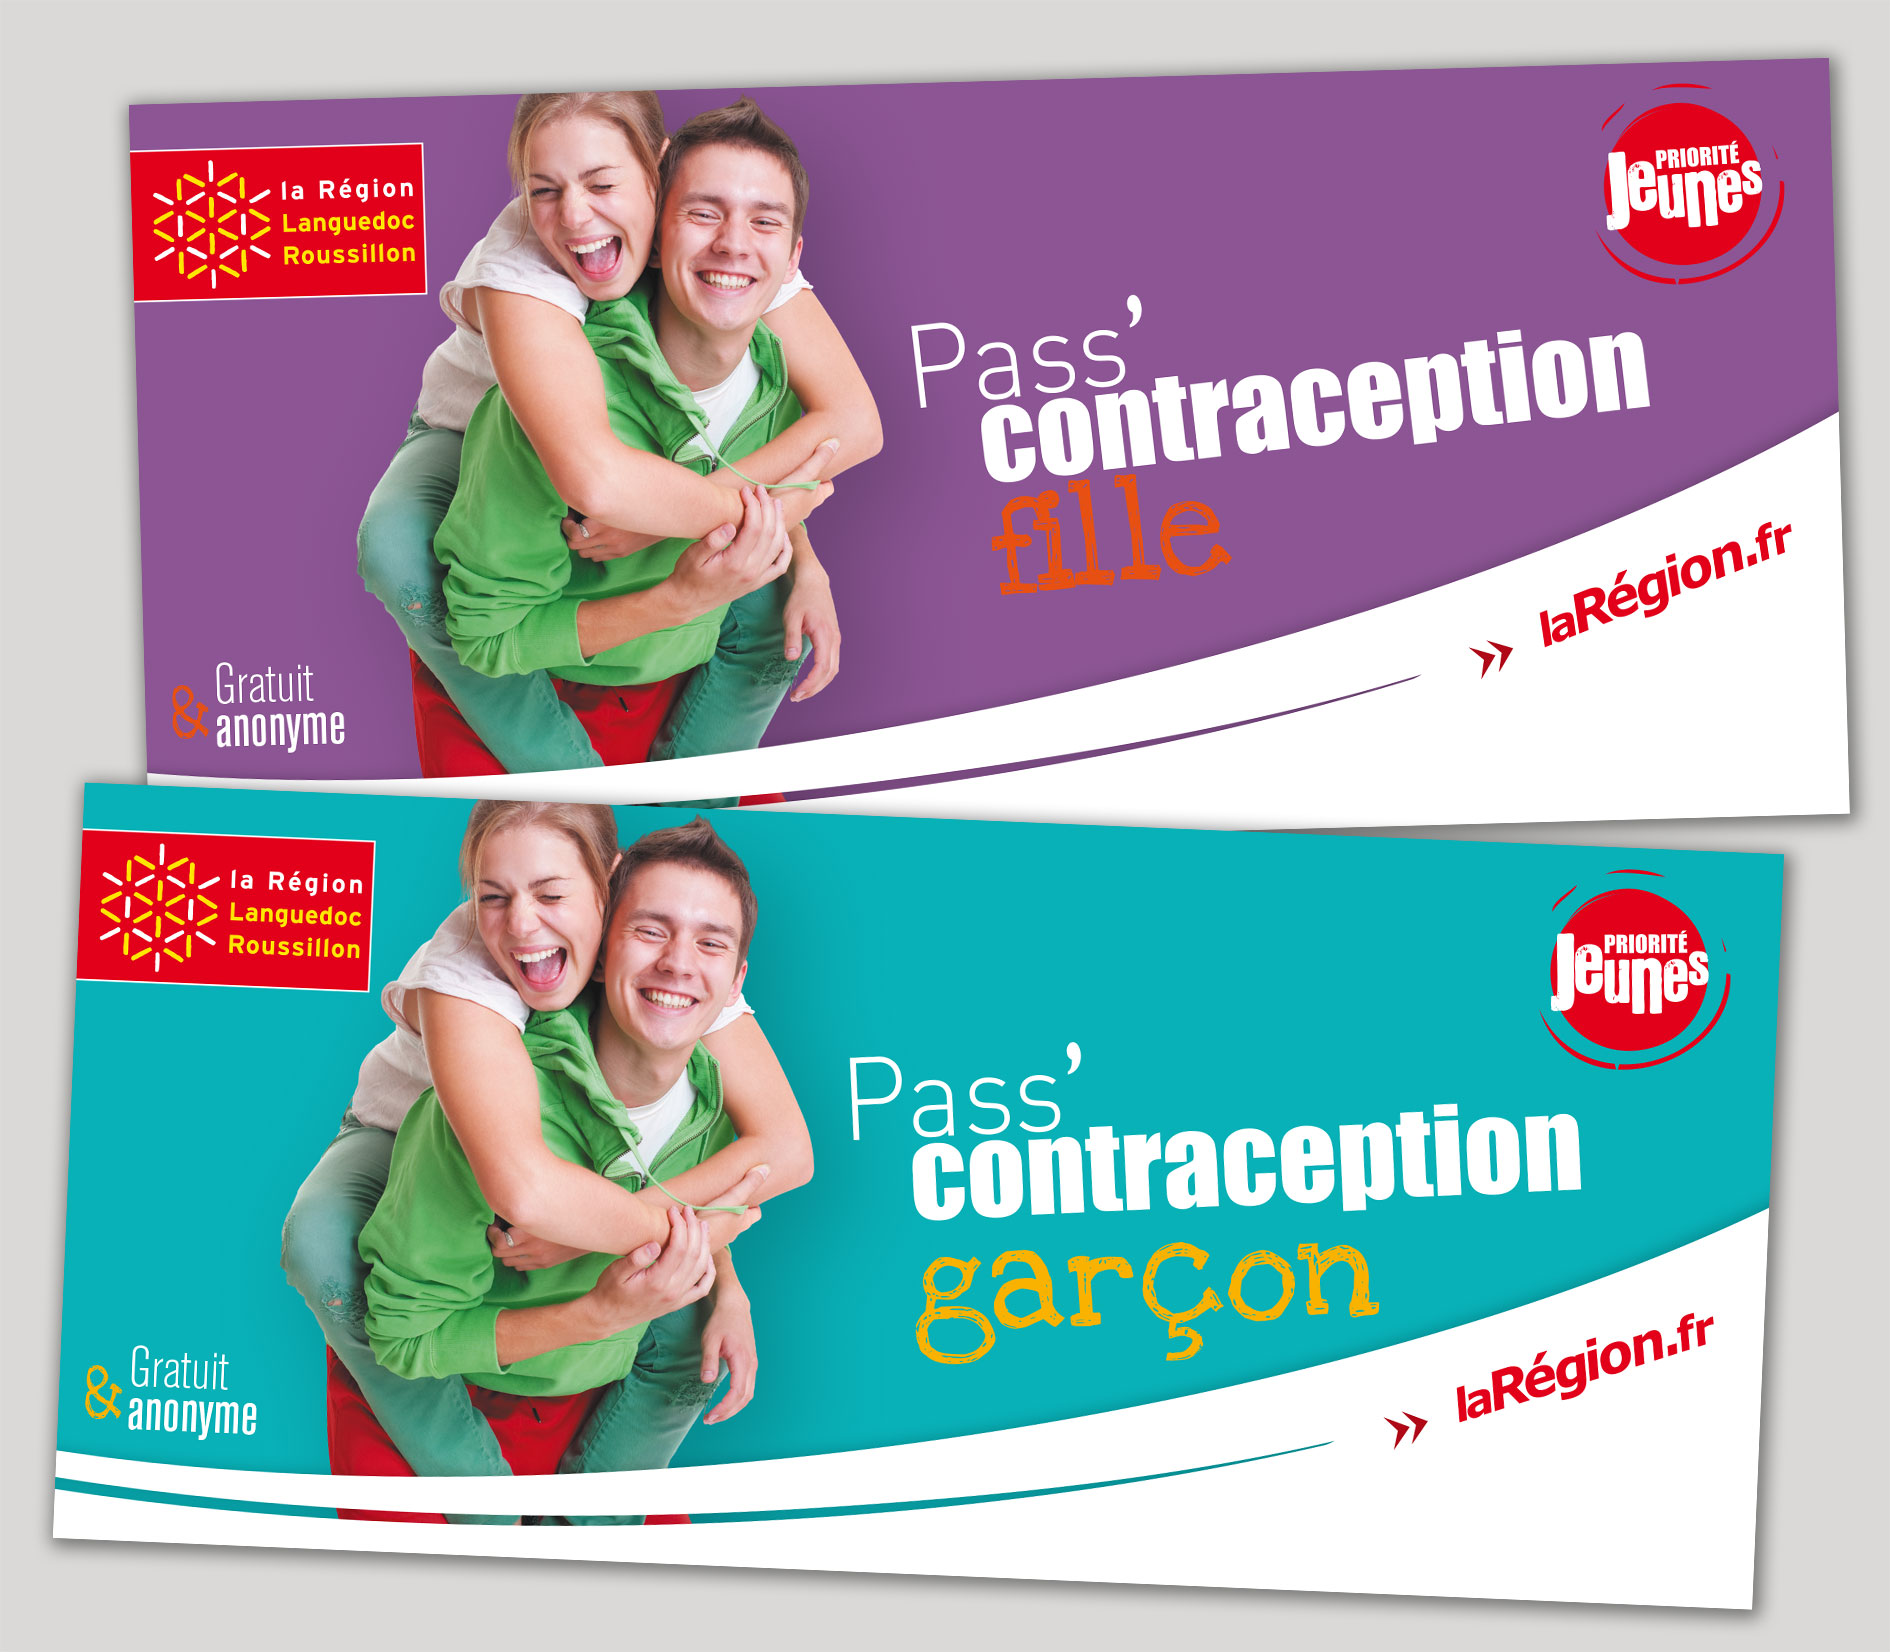 image-passcontraception-01.jpg